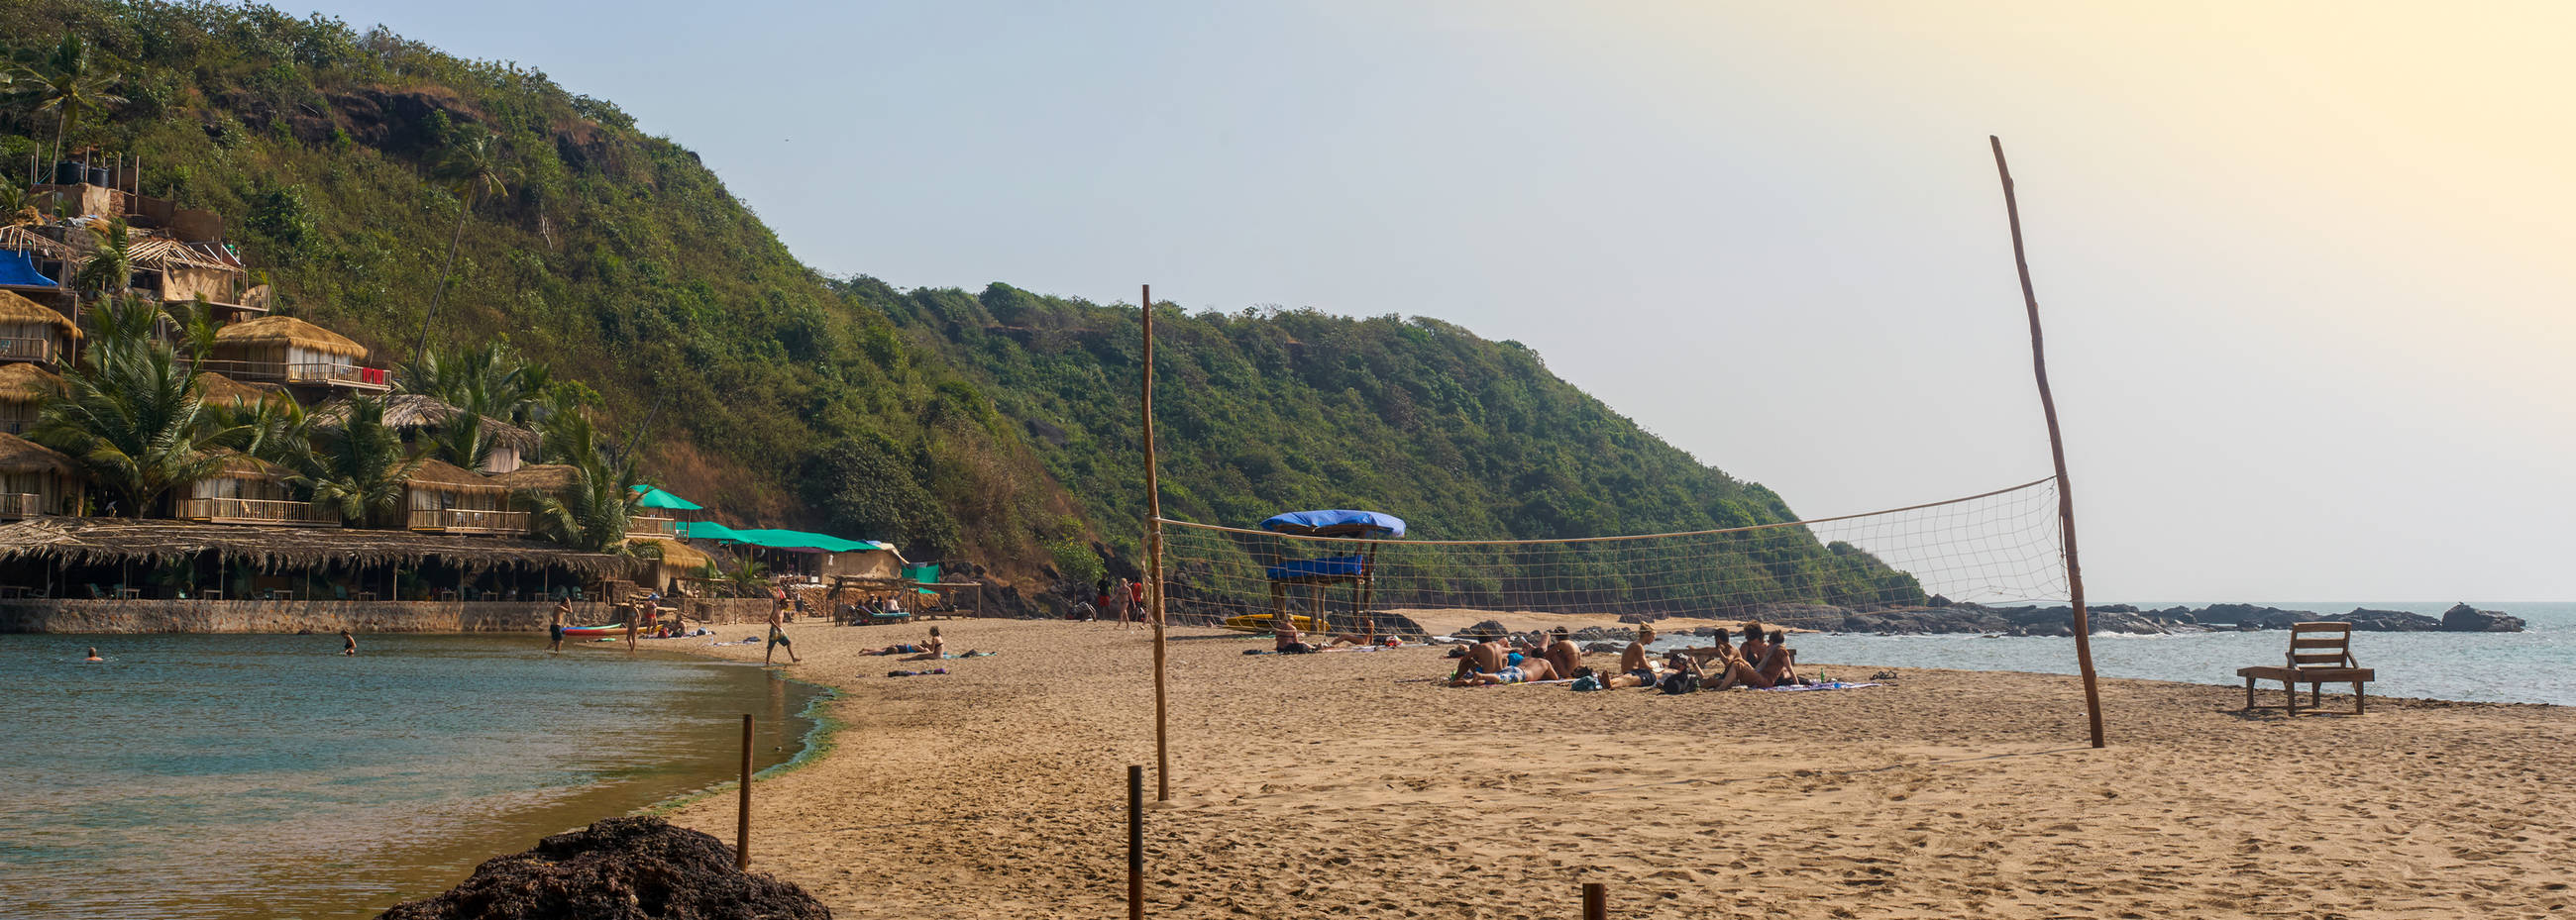 Reviews of tourists: Goa is a piece of paradise for all